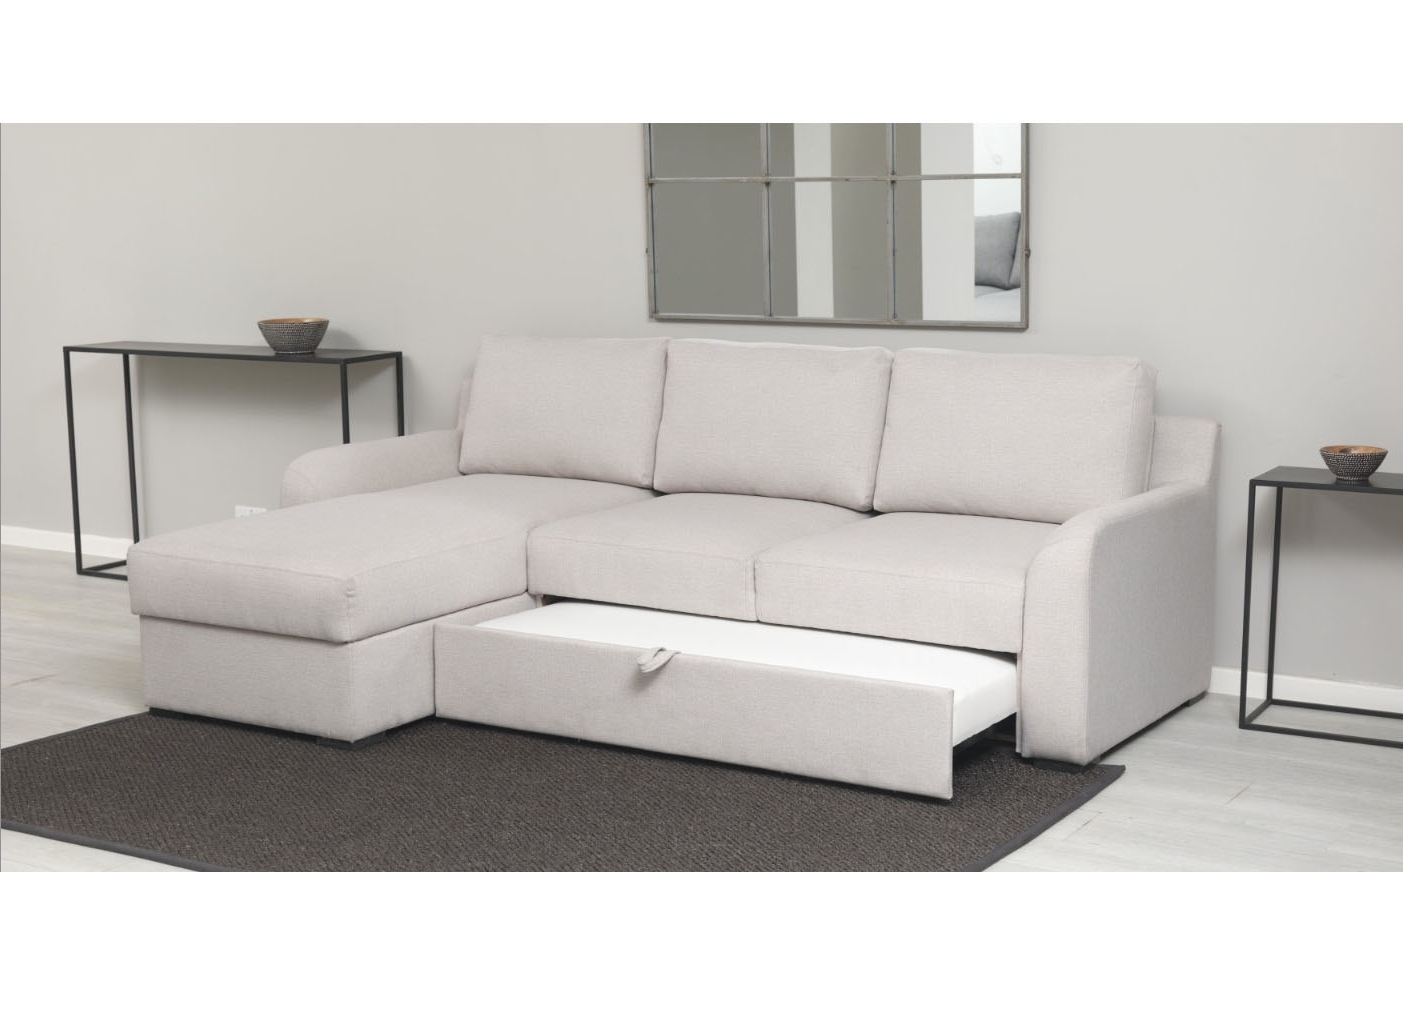 Sofabeds With Chaise With Regard To Popular Abbey Sofabed With Chaise & Storage – Aflair For Home (View 13 of 15)